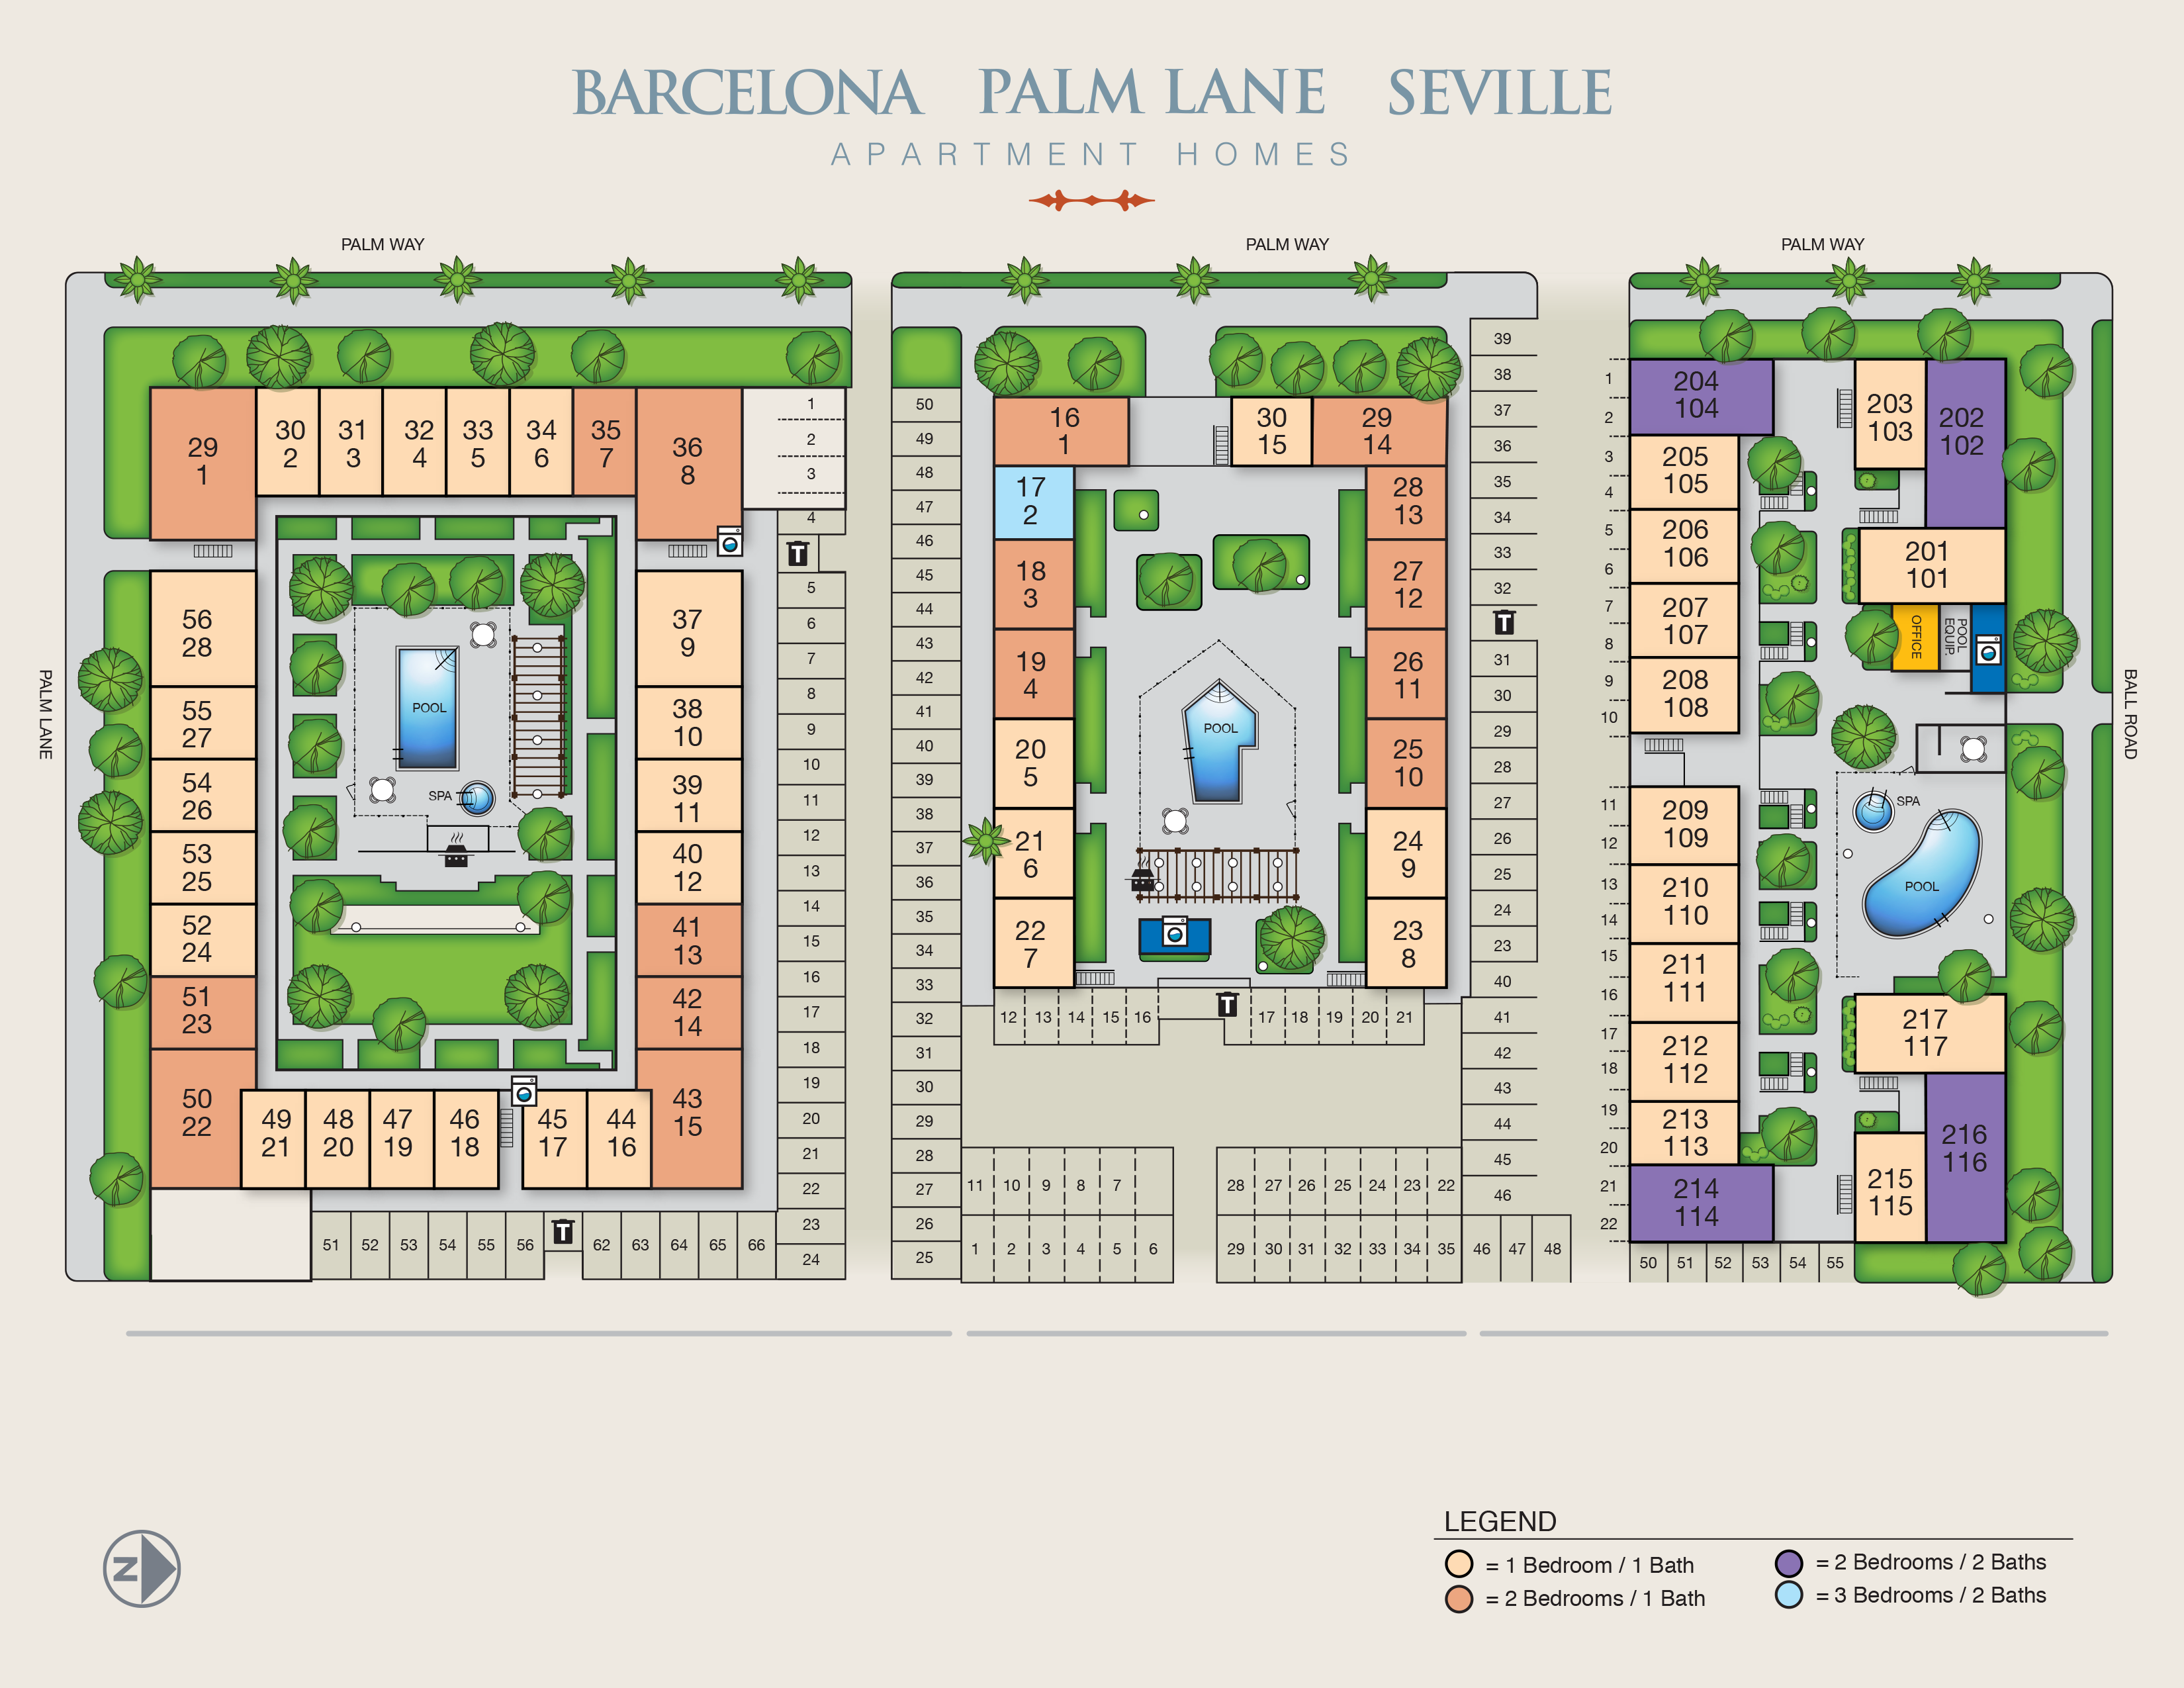 Barcelona, Palm Lane, Seville Apartment Homes site map